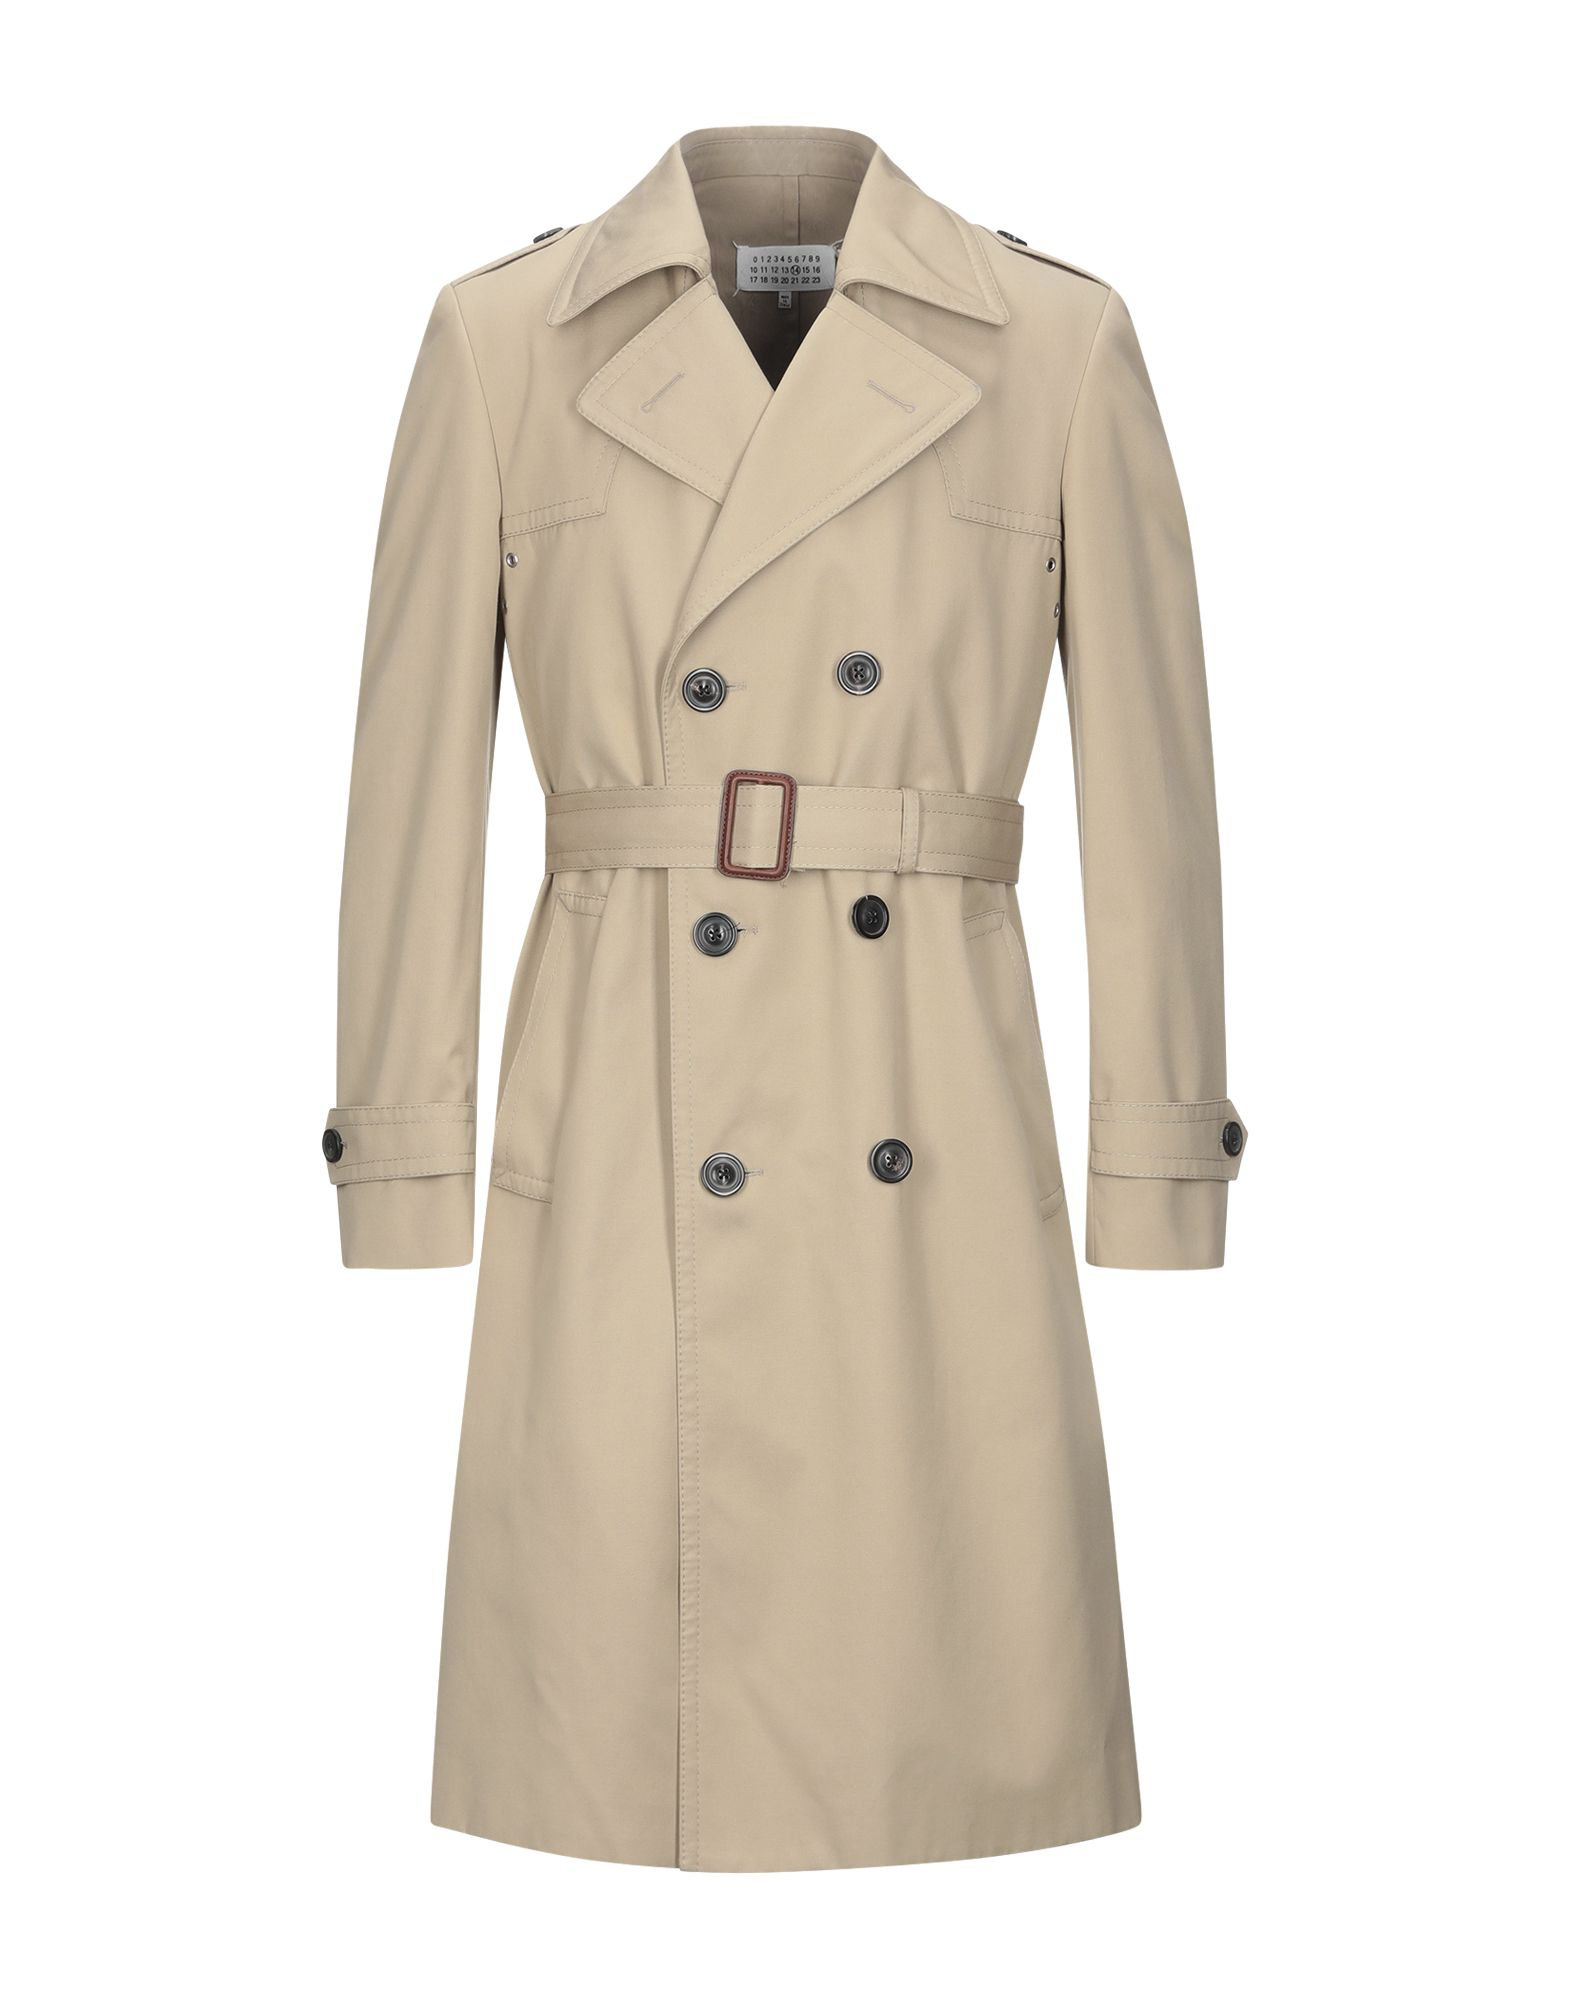 MAISON MARGIELA Overcoats. twill, flashes, belt, basic solid color, double-breasted, button closing, lapel collar, multipockets, long sleeves, strapped cuffs, fully lined, large sized. 65% Polyester, 35% Cotton